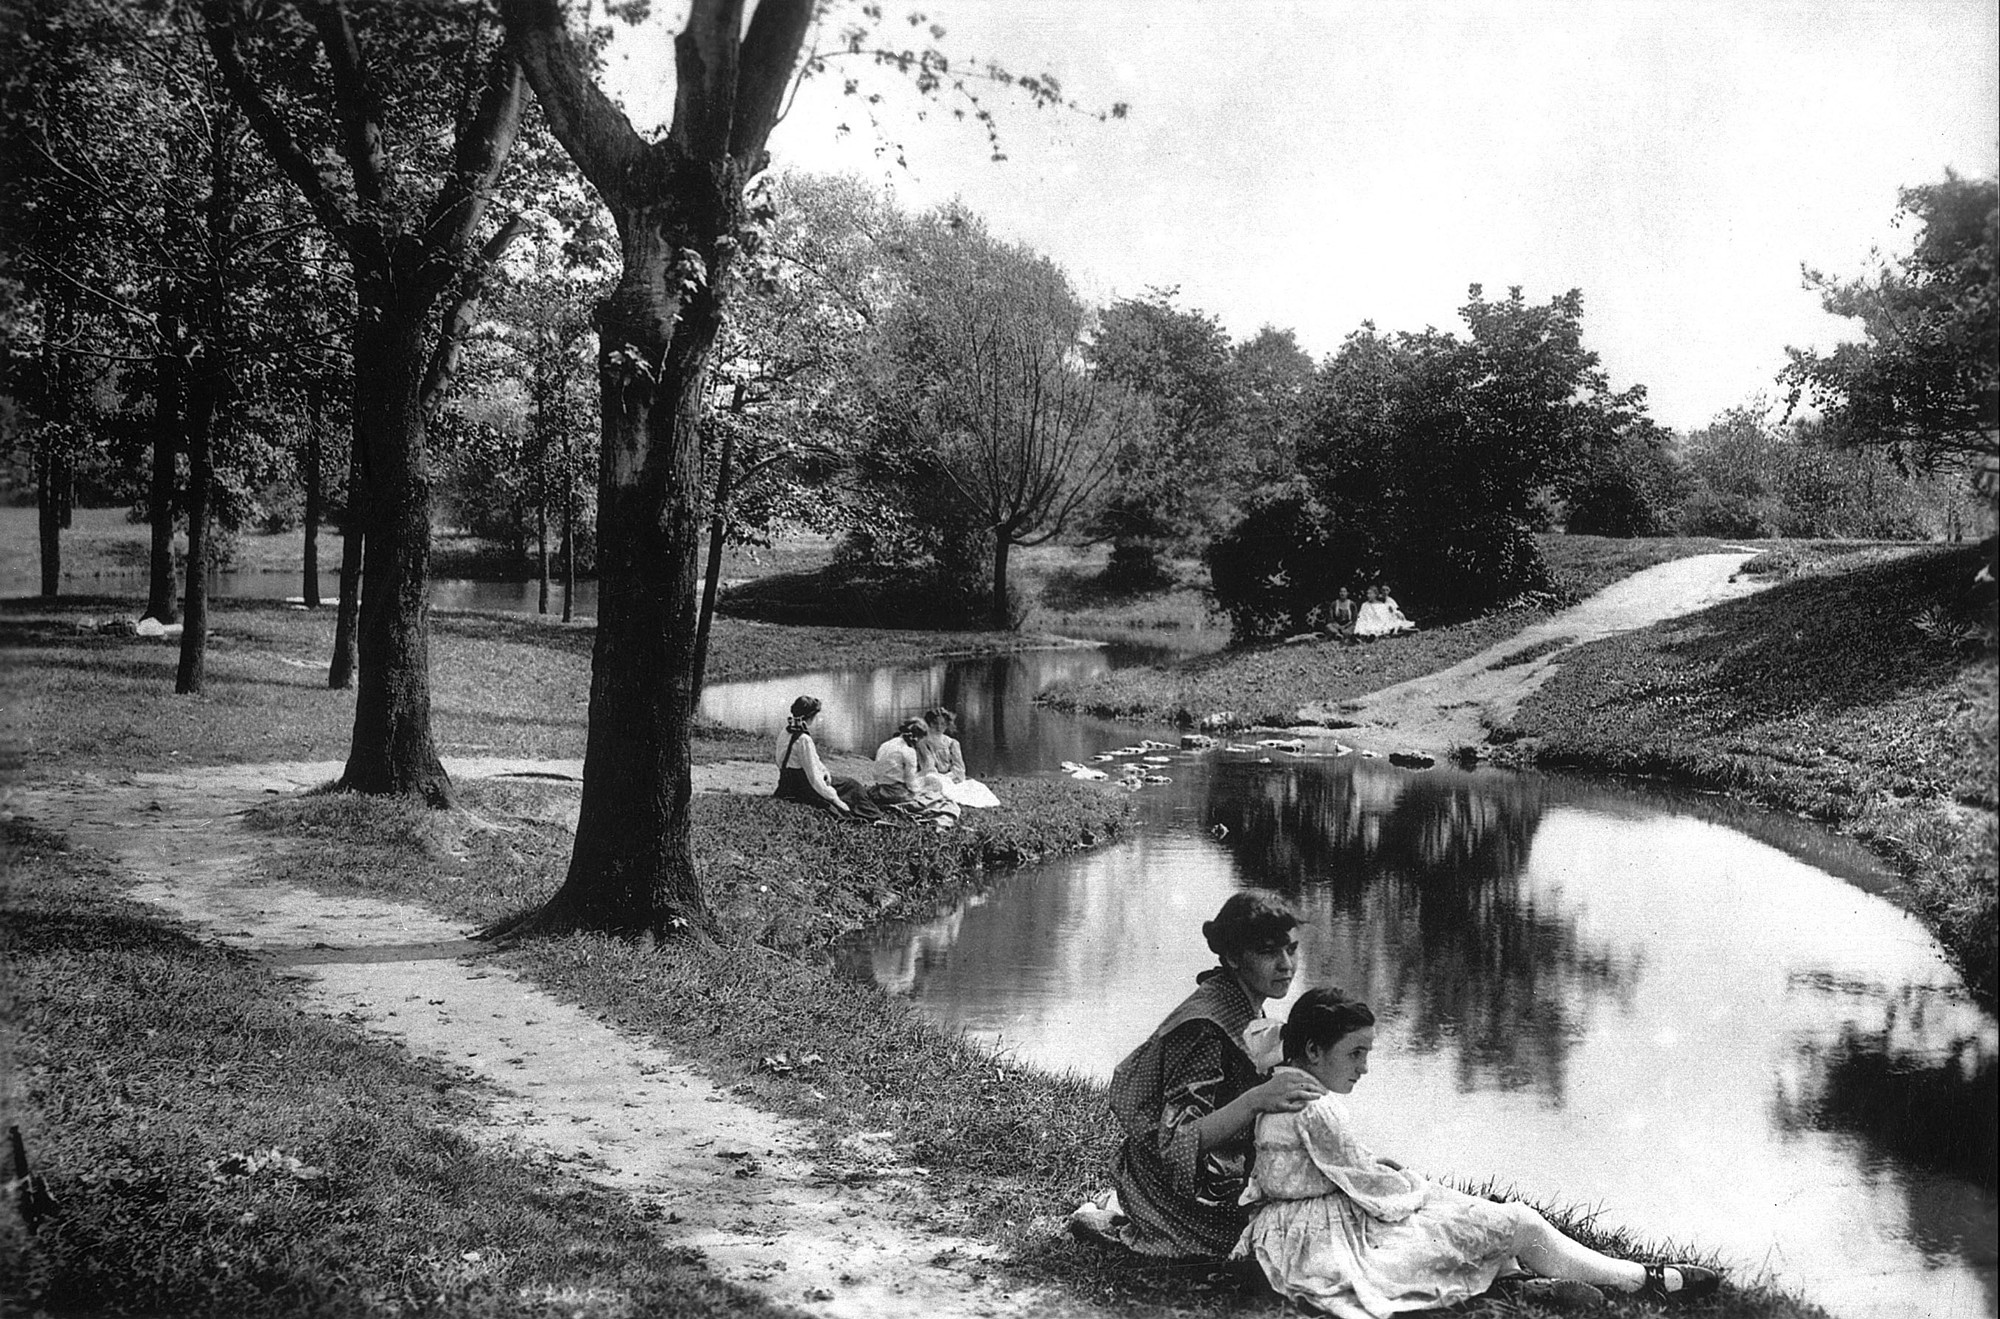 Washington Park, c. 1910